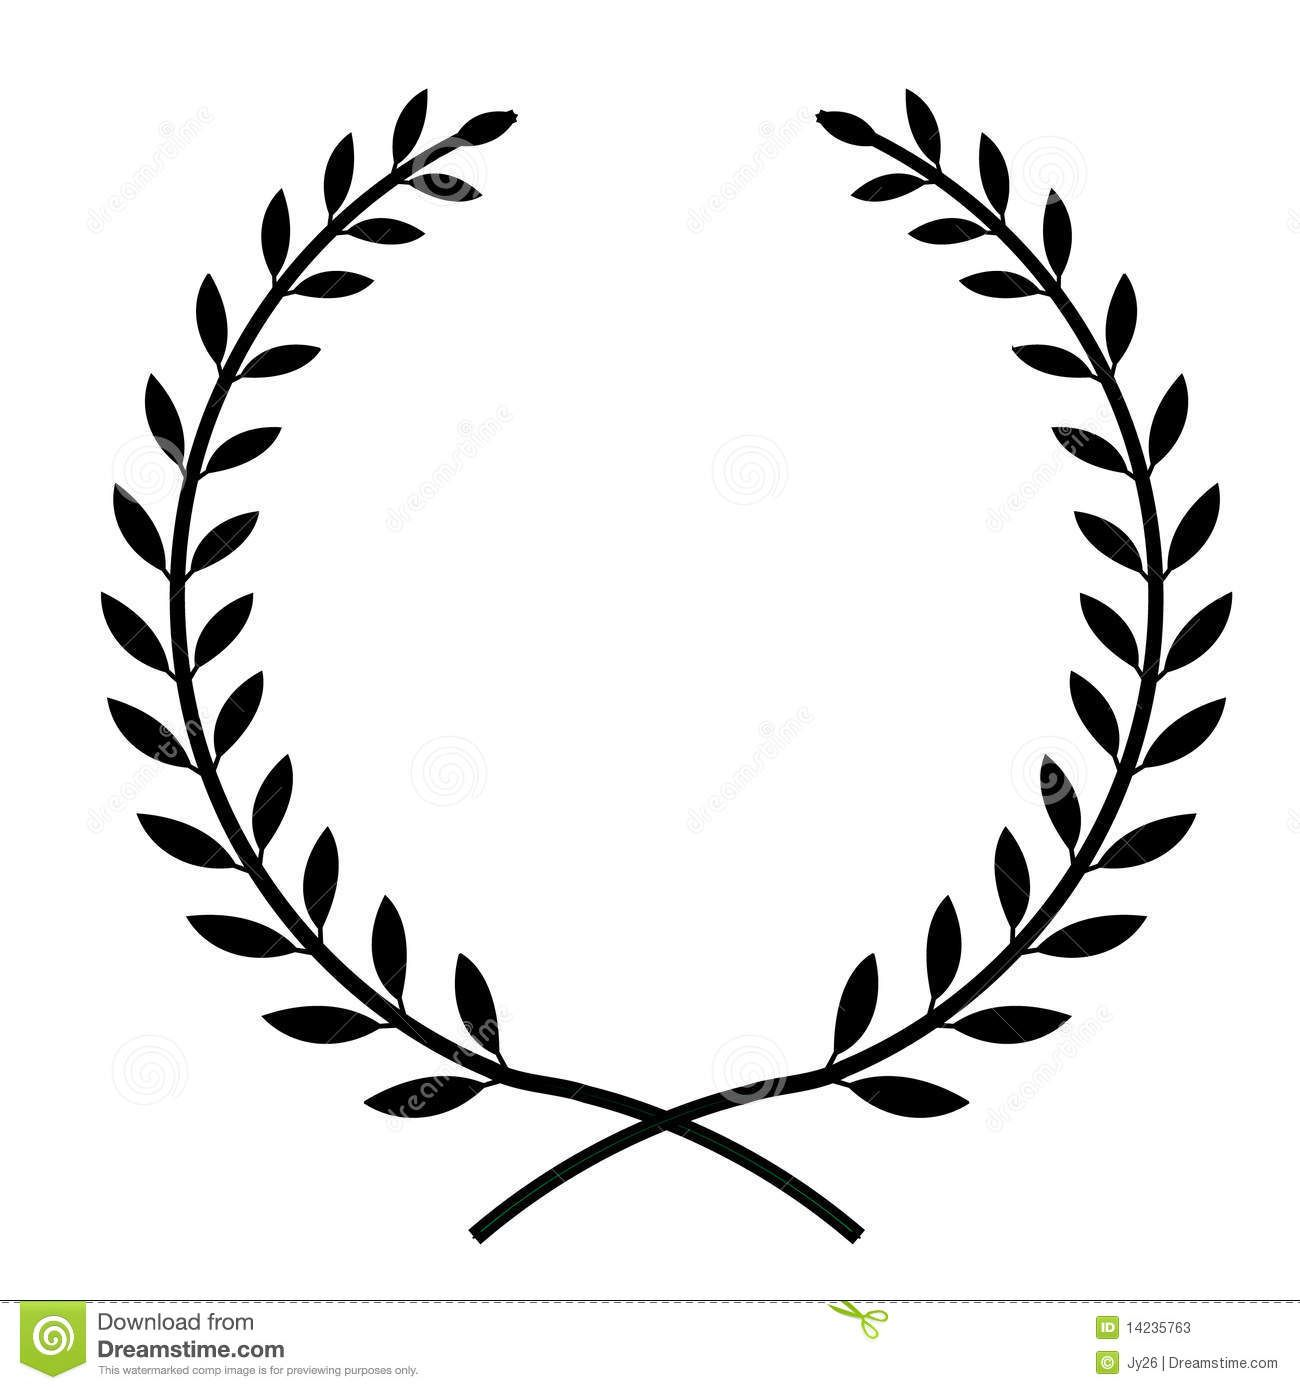 Olive branches clipart clip library library olive branches | Logos | Tatuajes, Caligrafía y Clipart clip library library